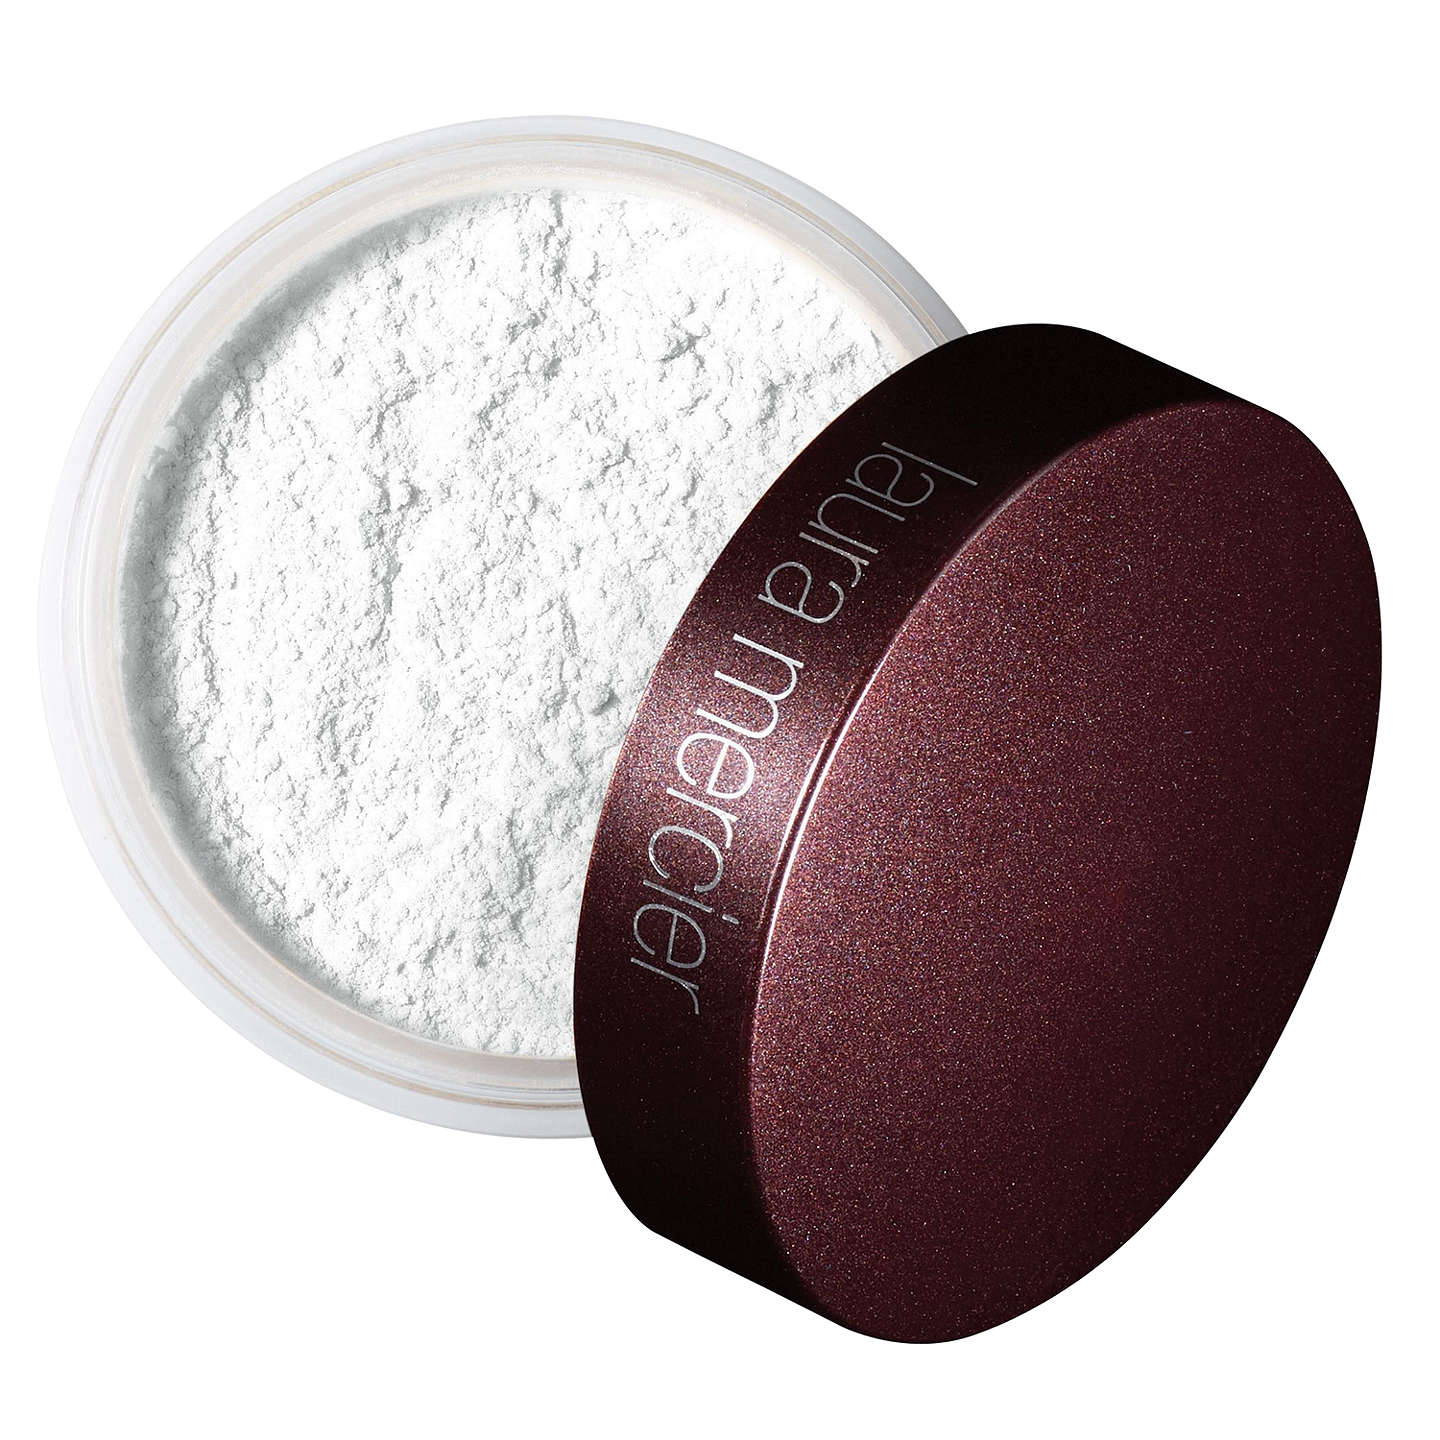 BuyLaura Mercier Invisible Loose Setting Powder Online at johnlewis.com